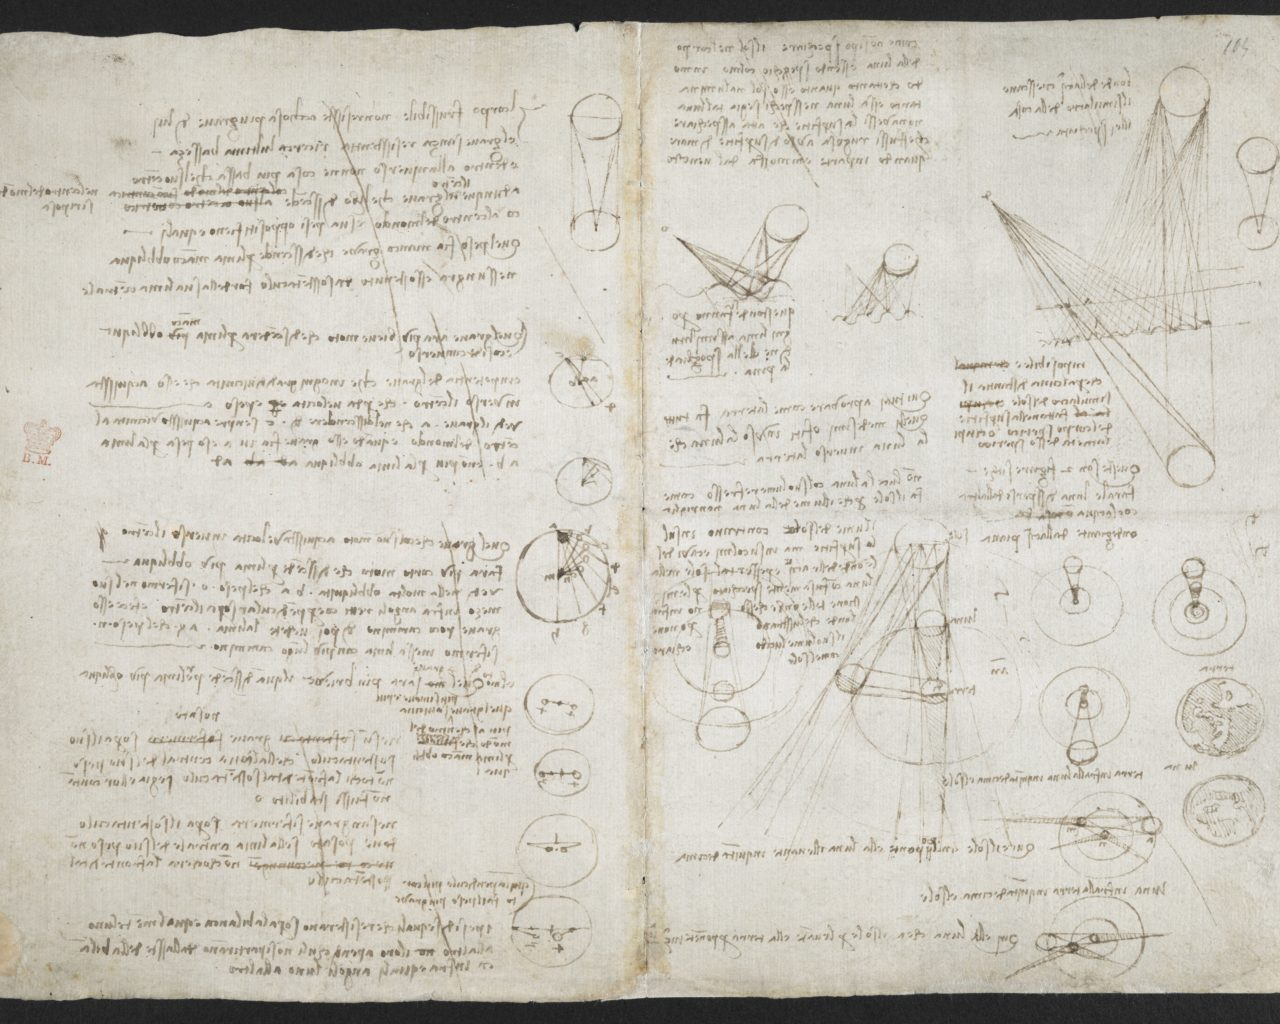 Astronomical notes and sketches, Leonardo Da Vinci's notebook (c) British Library Board